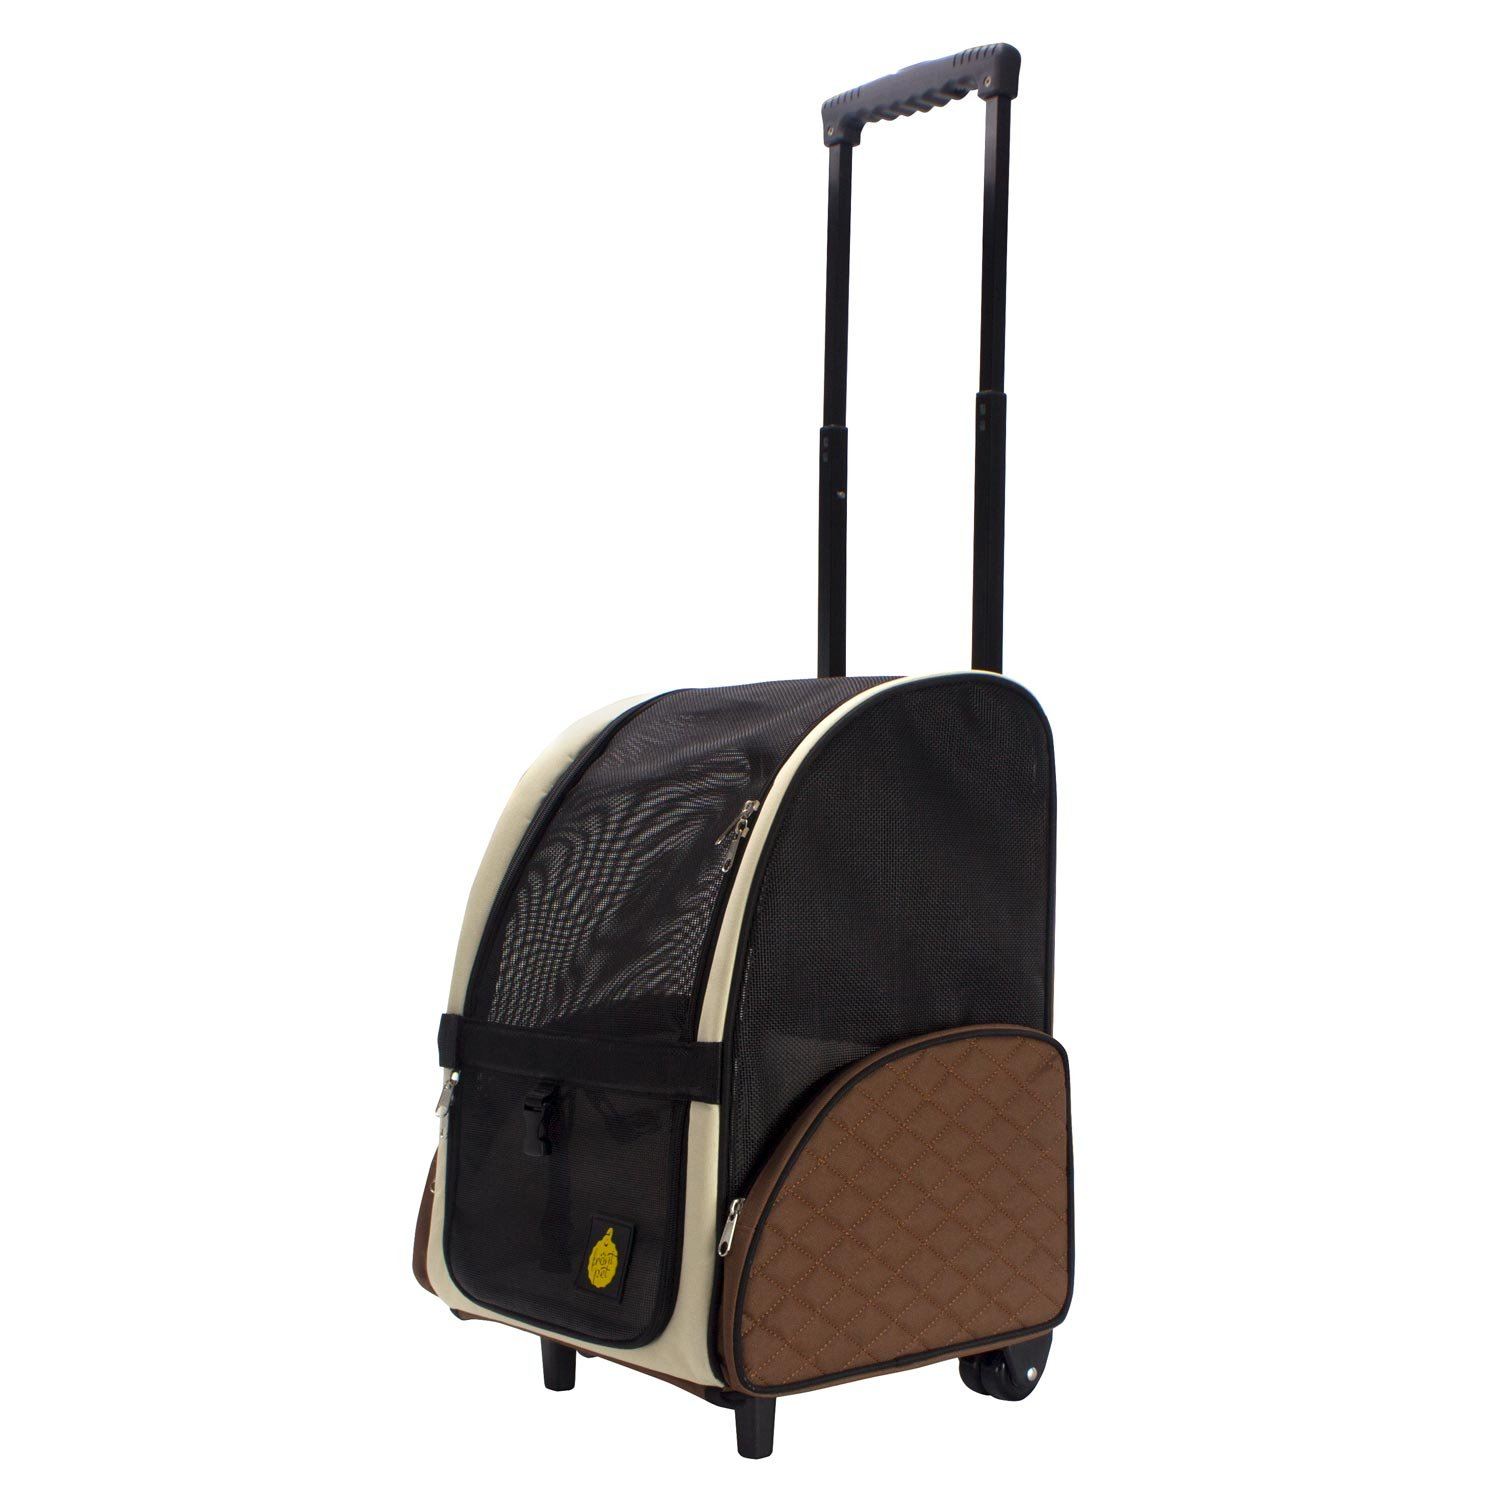 FrontPet Rolling Pet Travel Carrier/Pet Carrier with Wheels/with Backpack Straps (12'' W x 14.5'' L x 19.5'' H) / Air Travel Pet Carrier/Airport Pet Carrier/Travel Pet Carrier/Pet Carrier